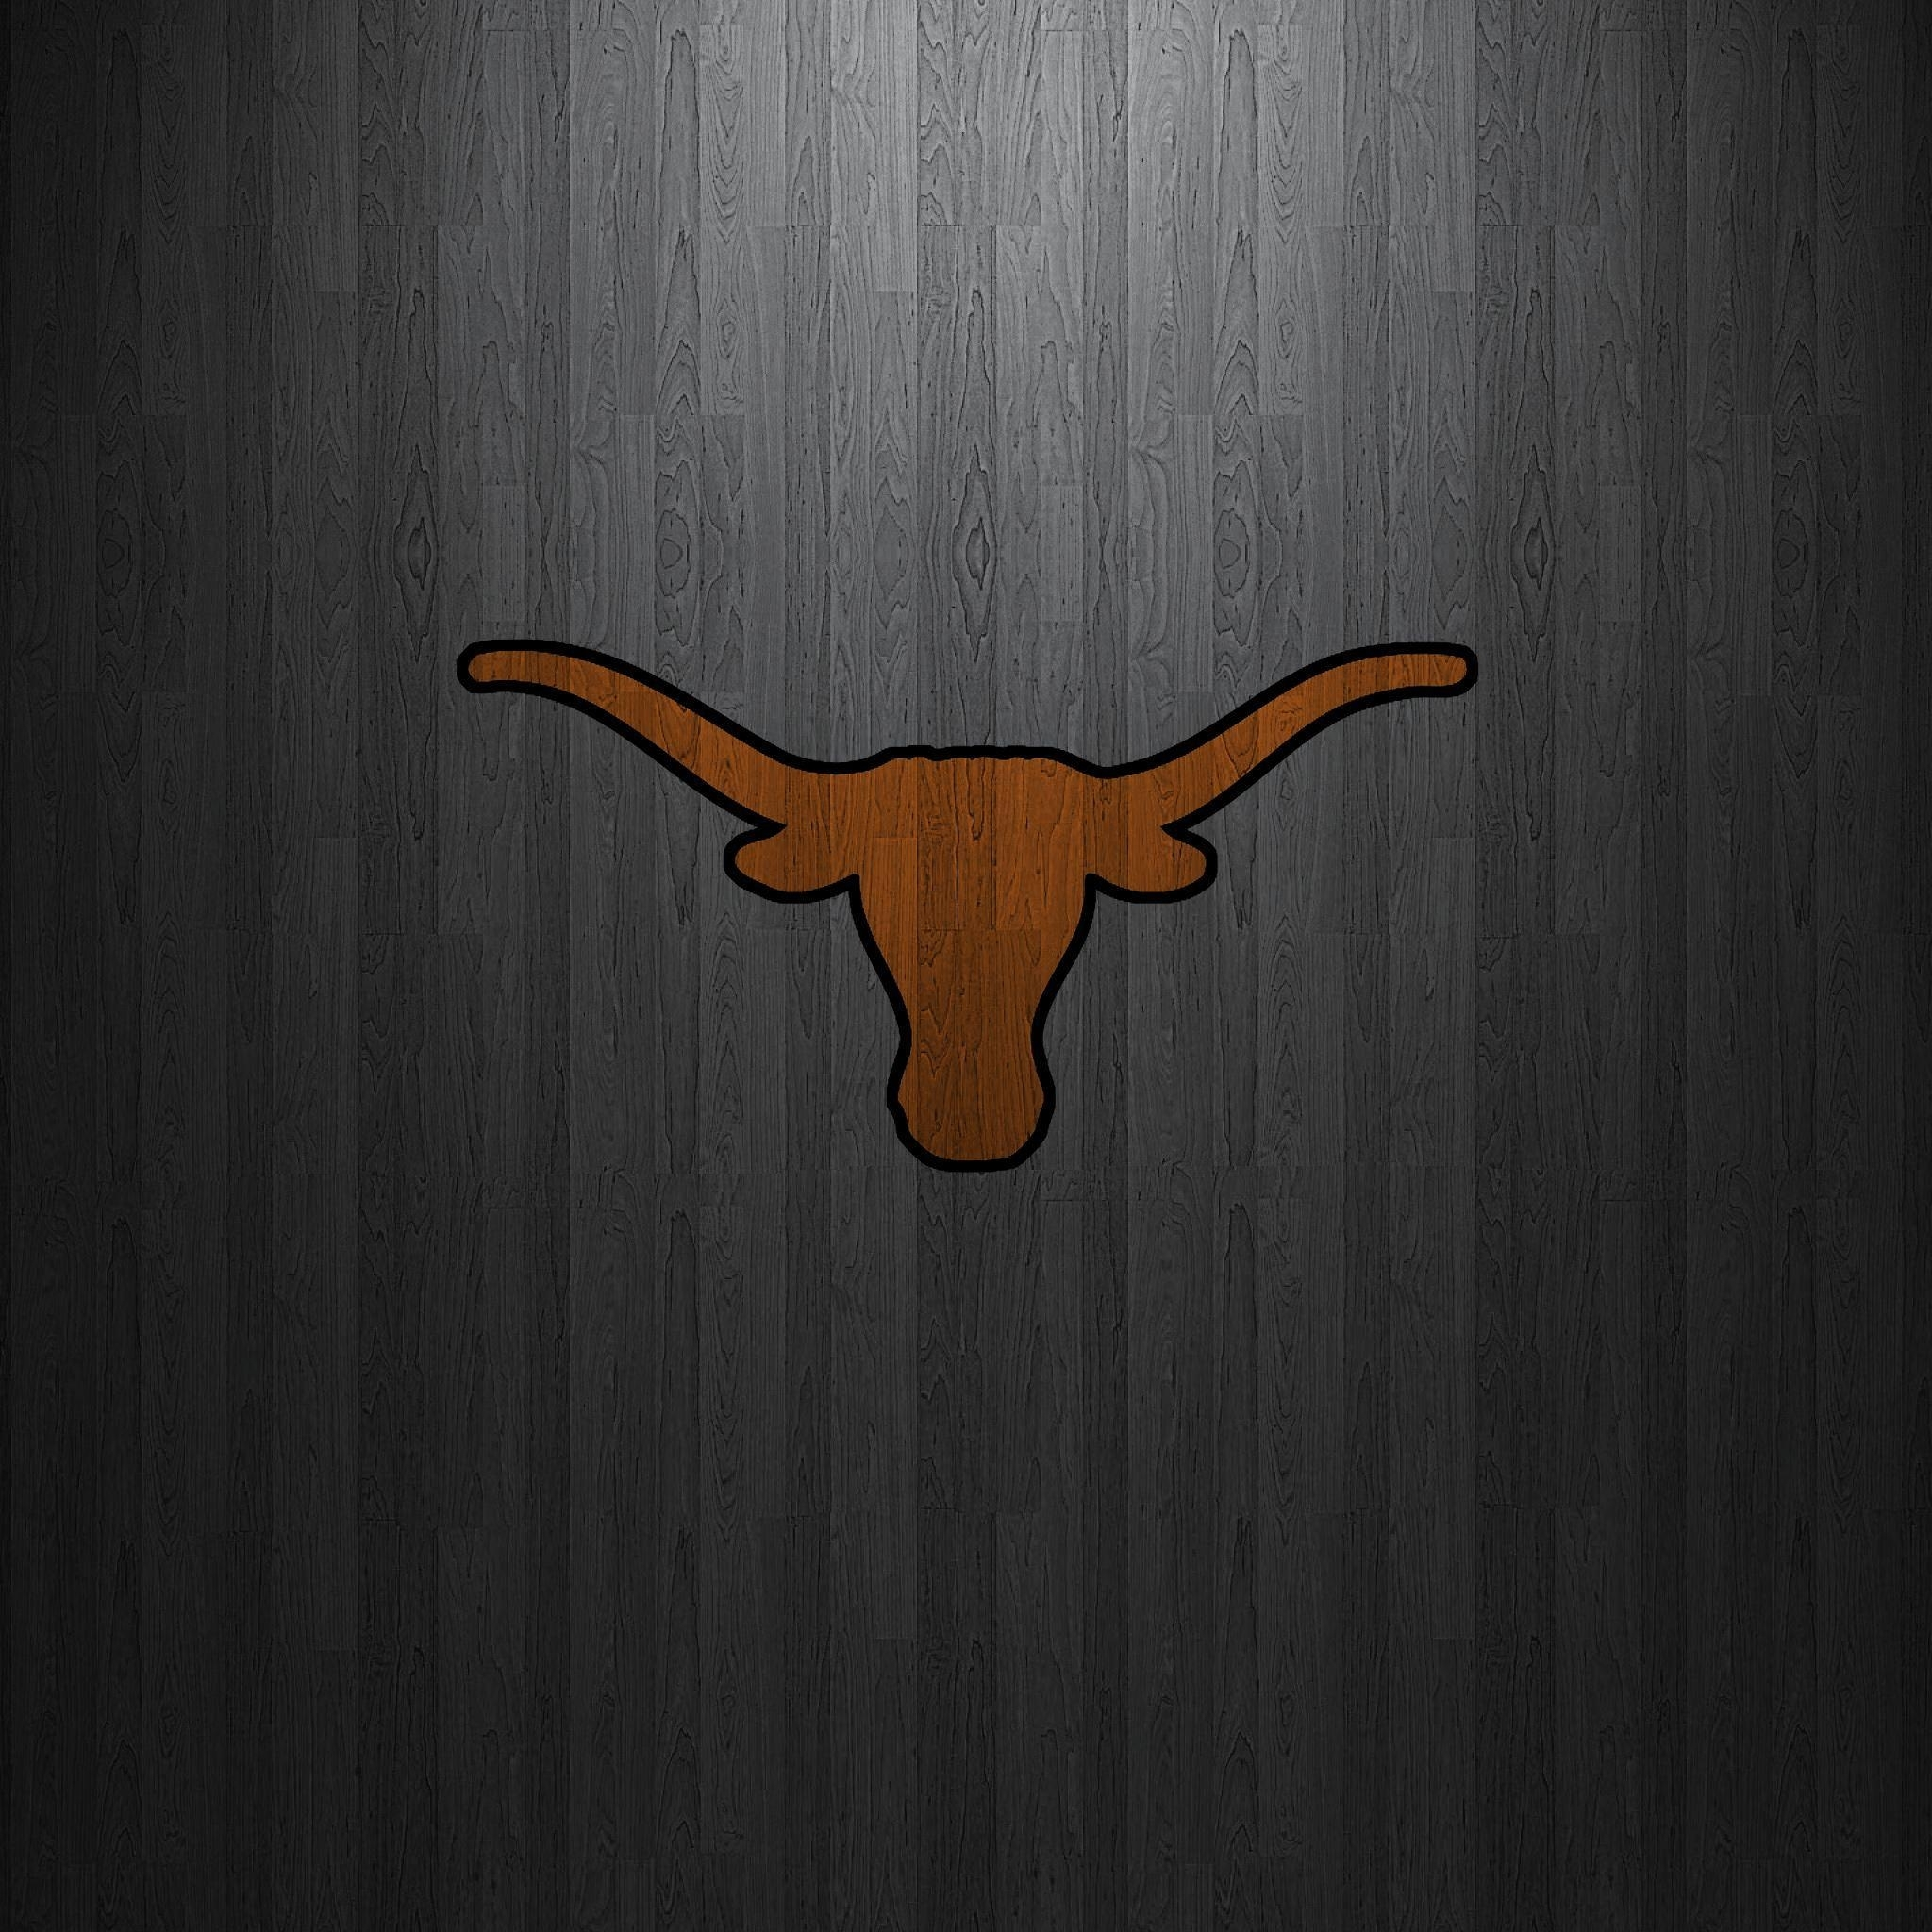 10 Most Popular Texas Longhorns Screen Savers FULL HD 1920×1080 For PC Desktop